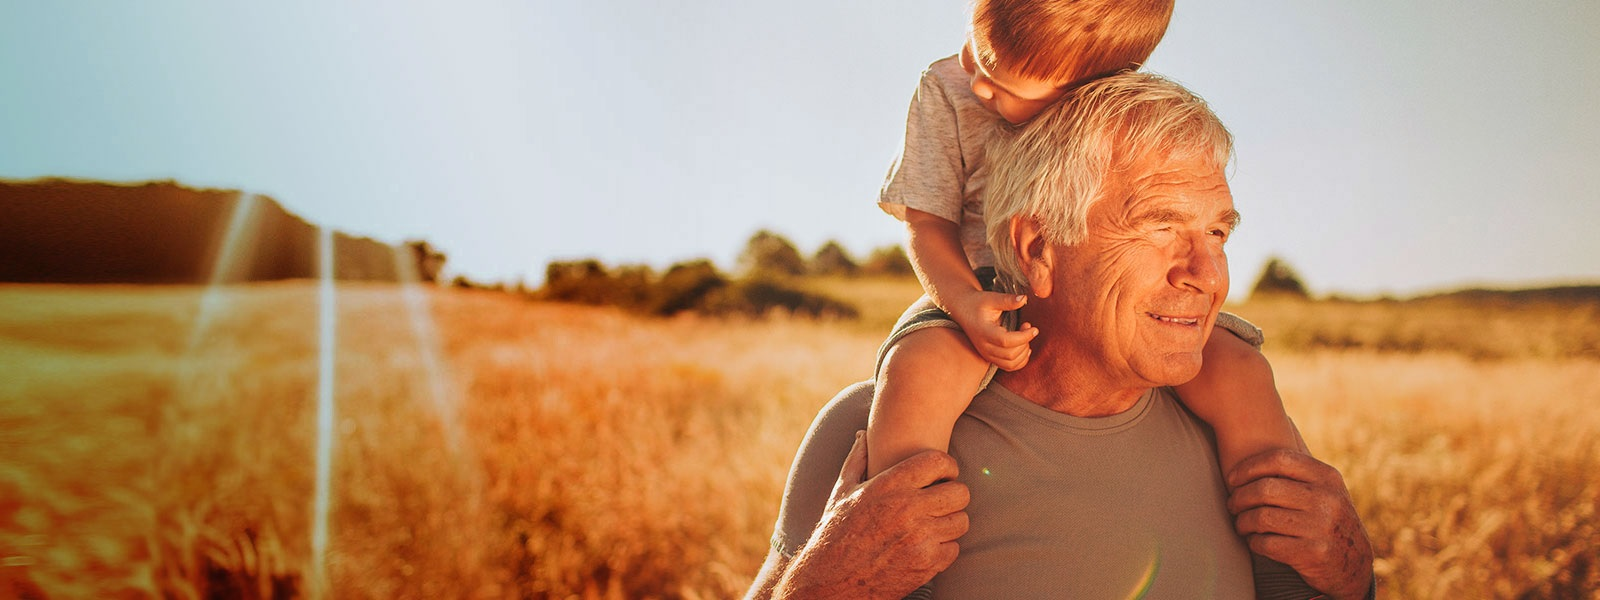 grandpa and grandson in wheat field with sunset behind them.jpg